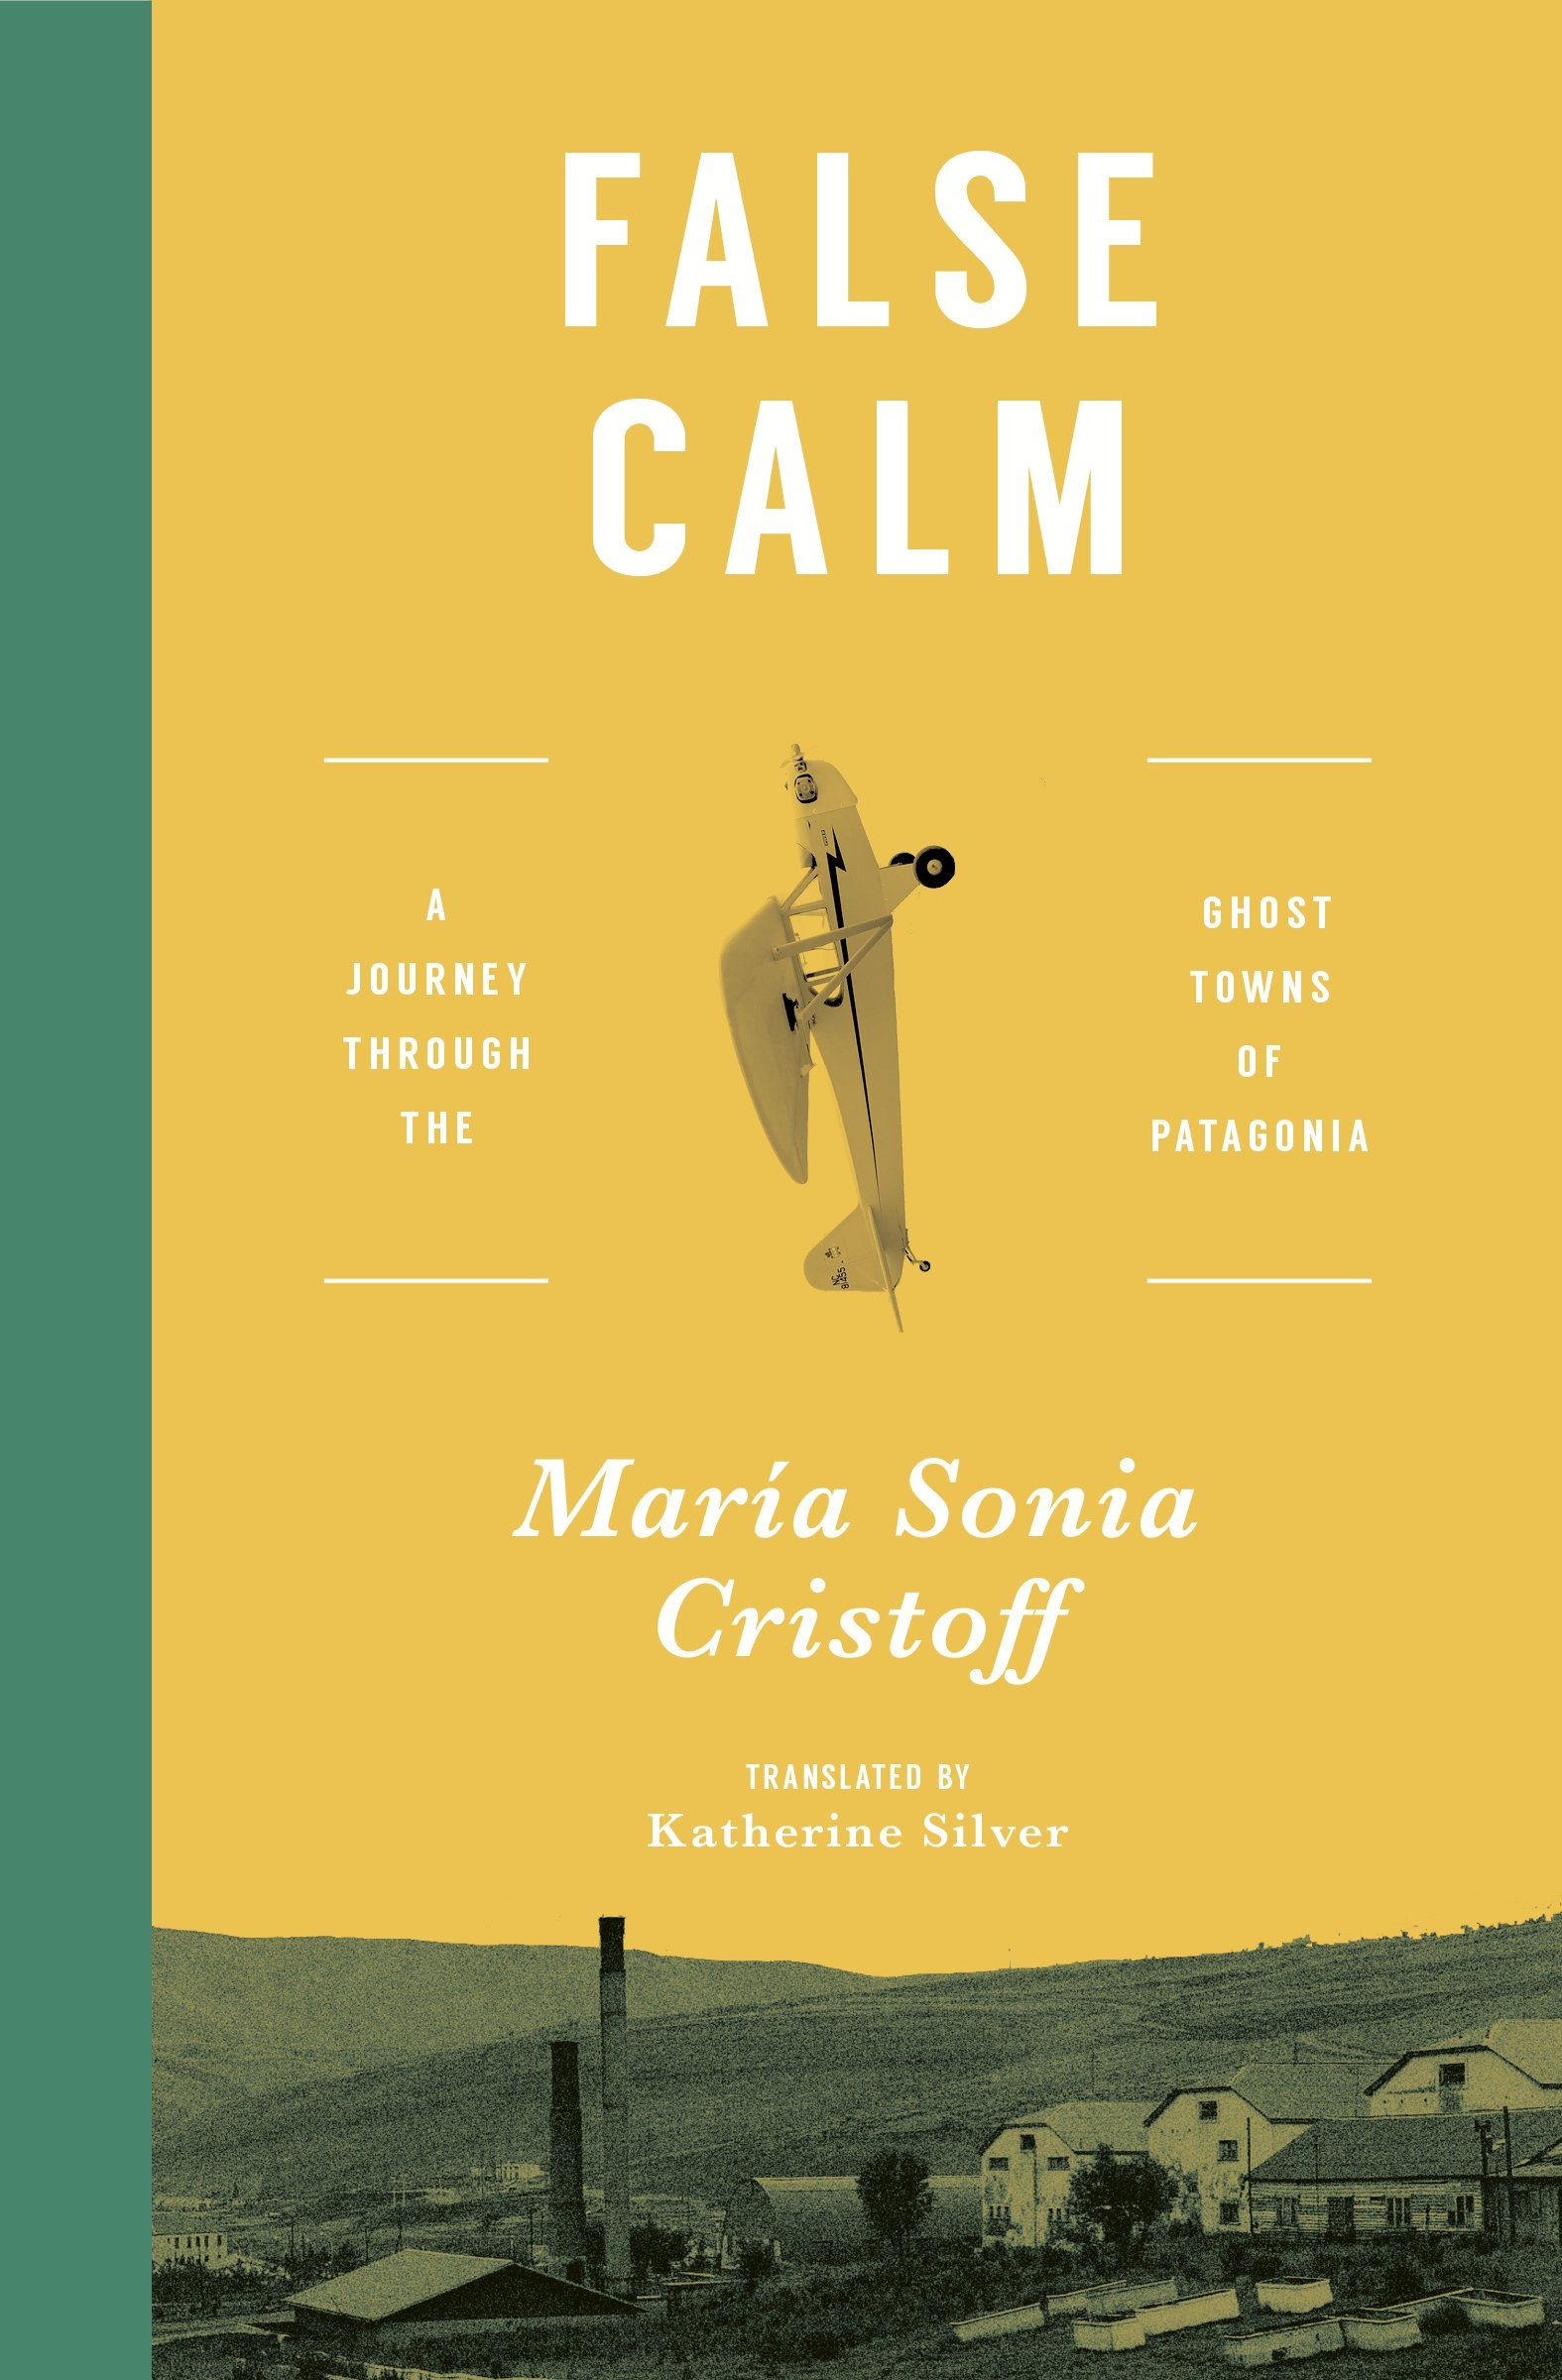 False Calm: A Journey Through the Ghost Towns of Patagonia: María